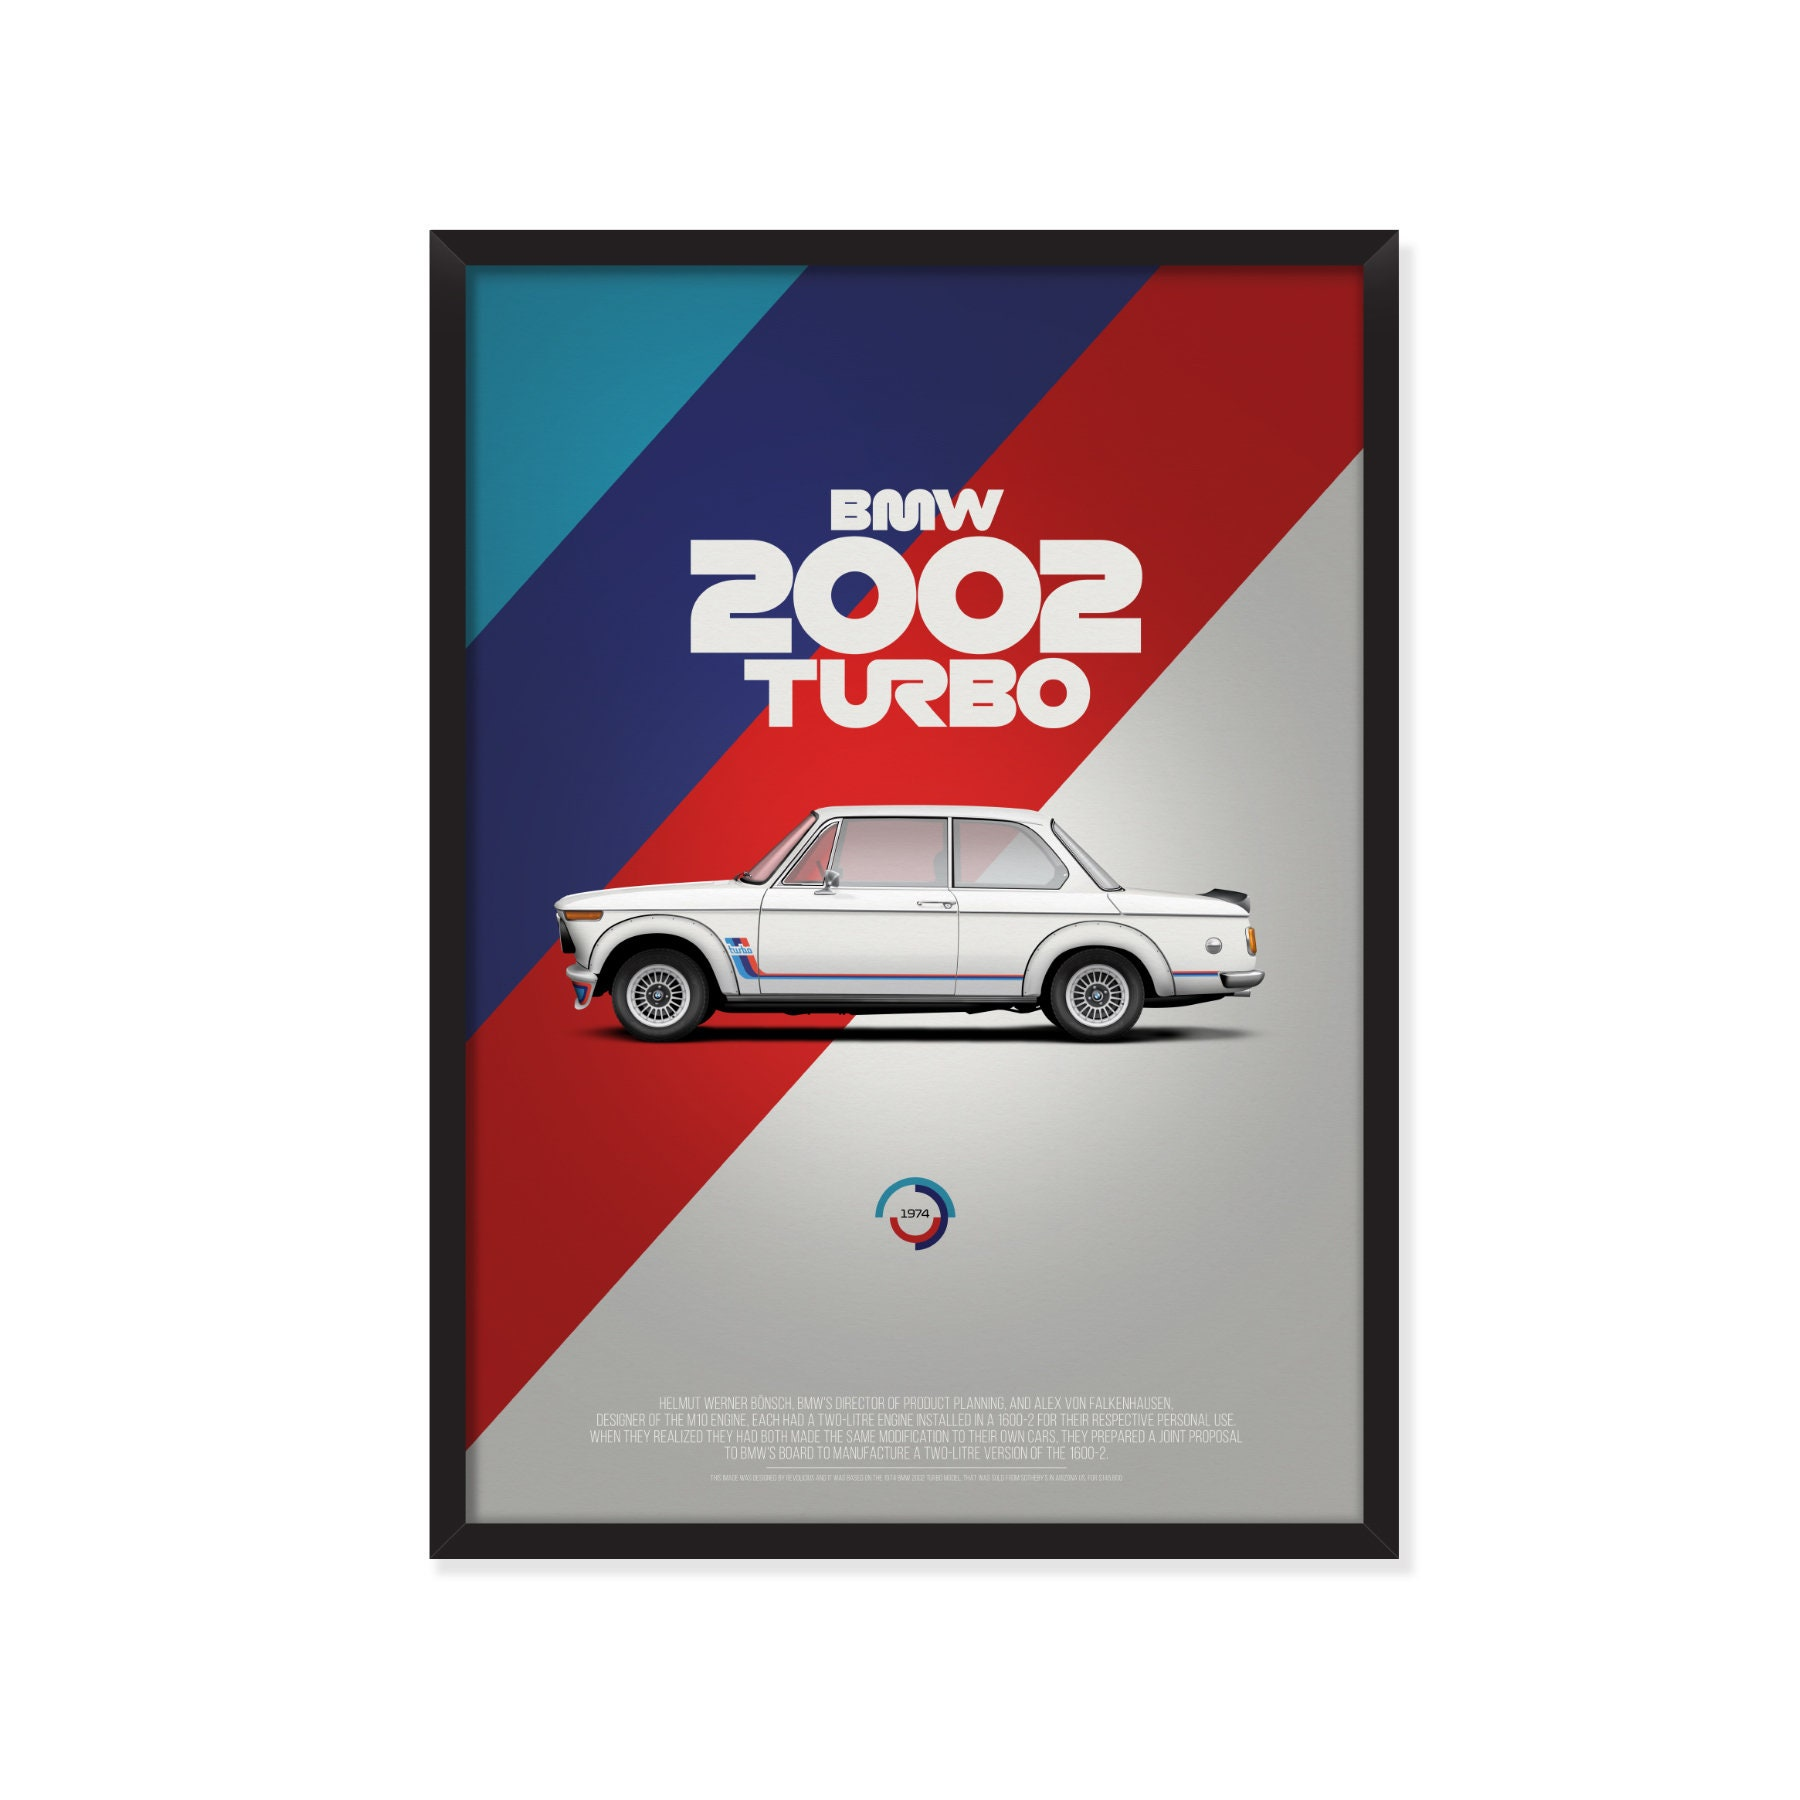 BMW 2002 turbo (Texaco version) poster